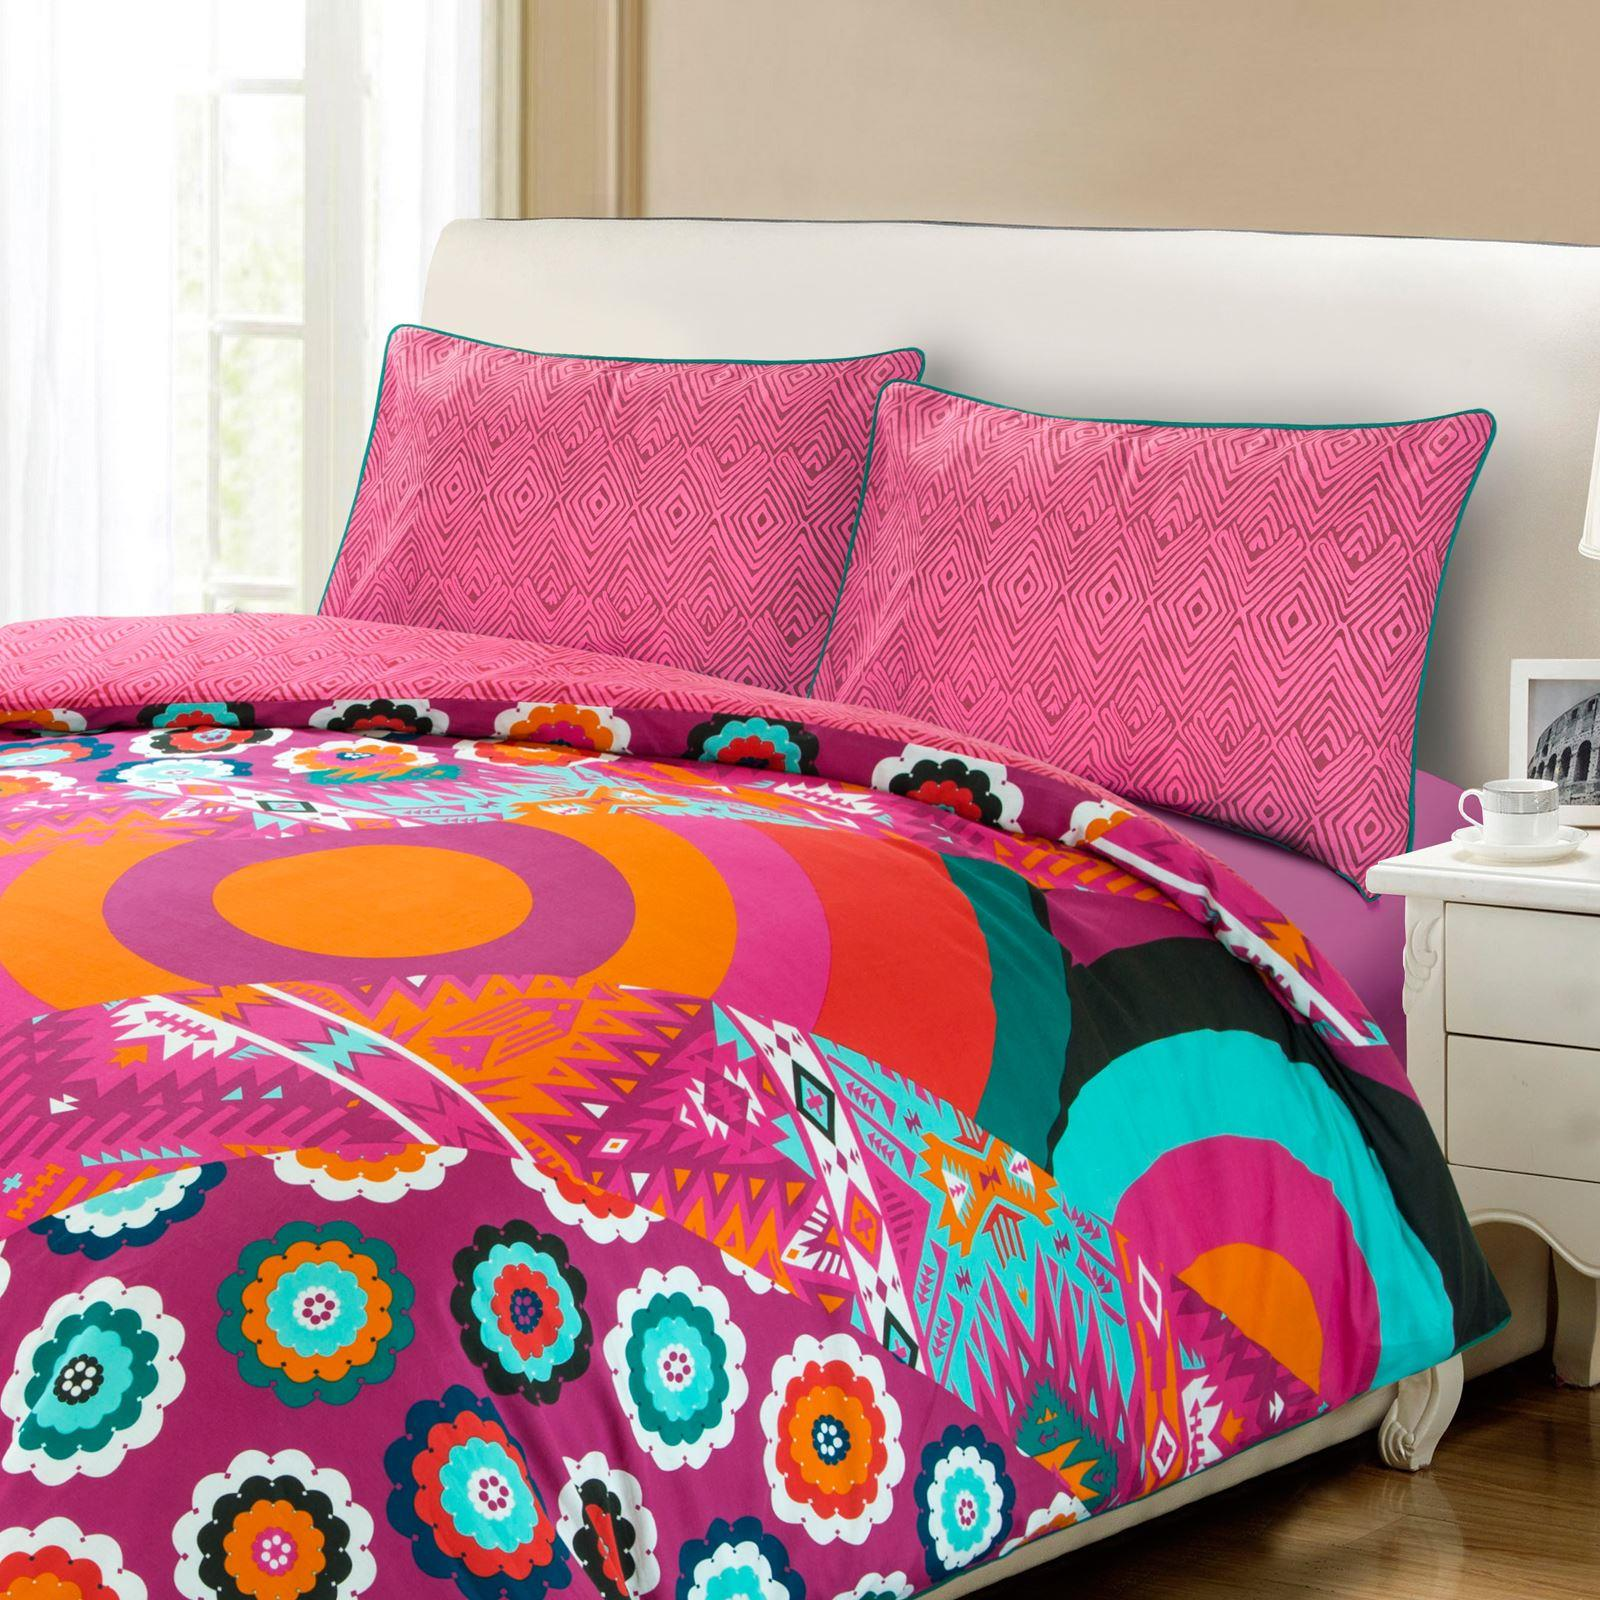 Copripiumino Re Sole.Floral Geometric Duvet Quilt Cover Bohemian Bedding Set Single